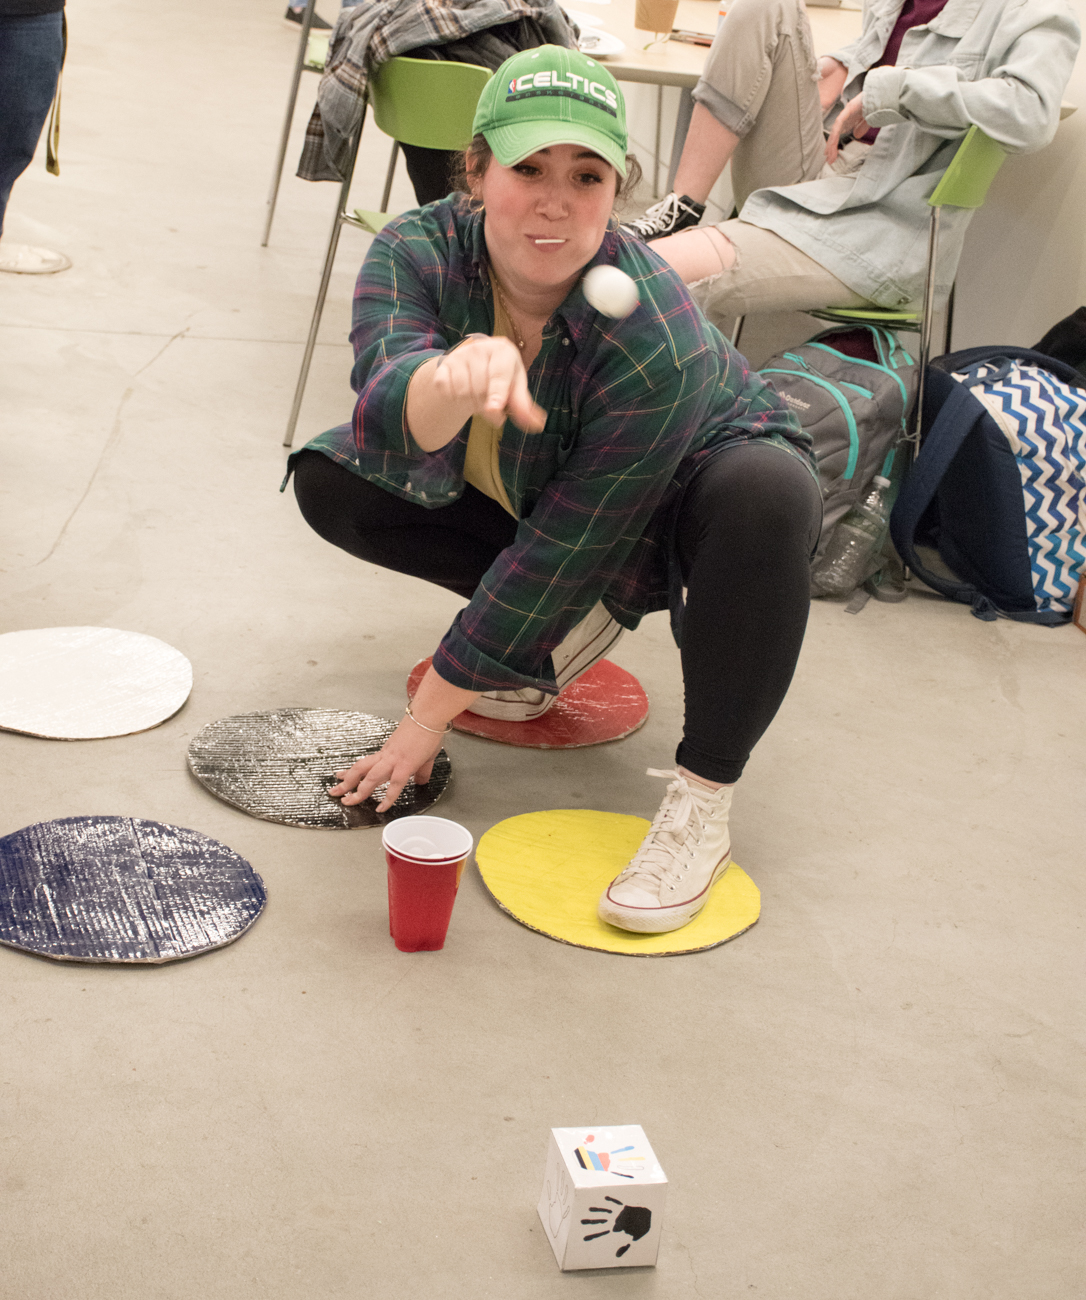 A girl crouches down on several colored Twister cirlces and throws a ball.